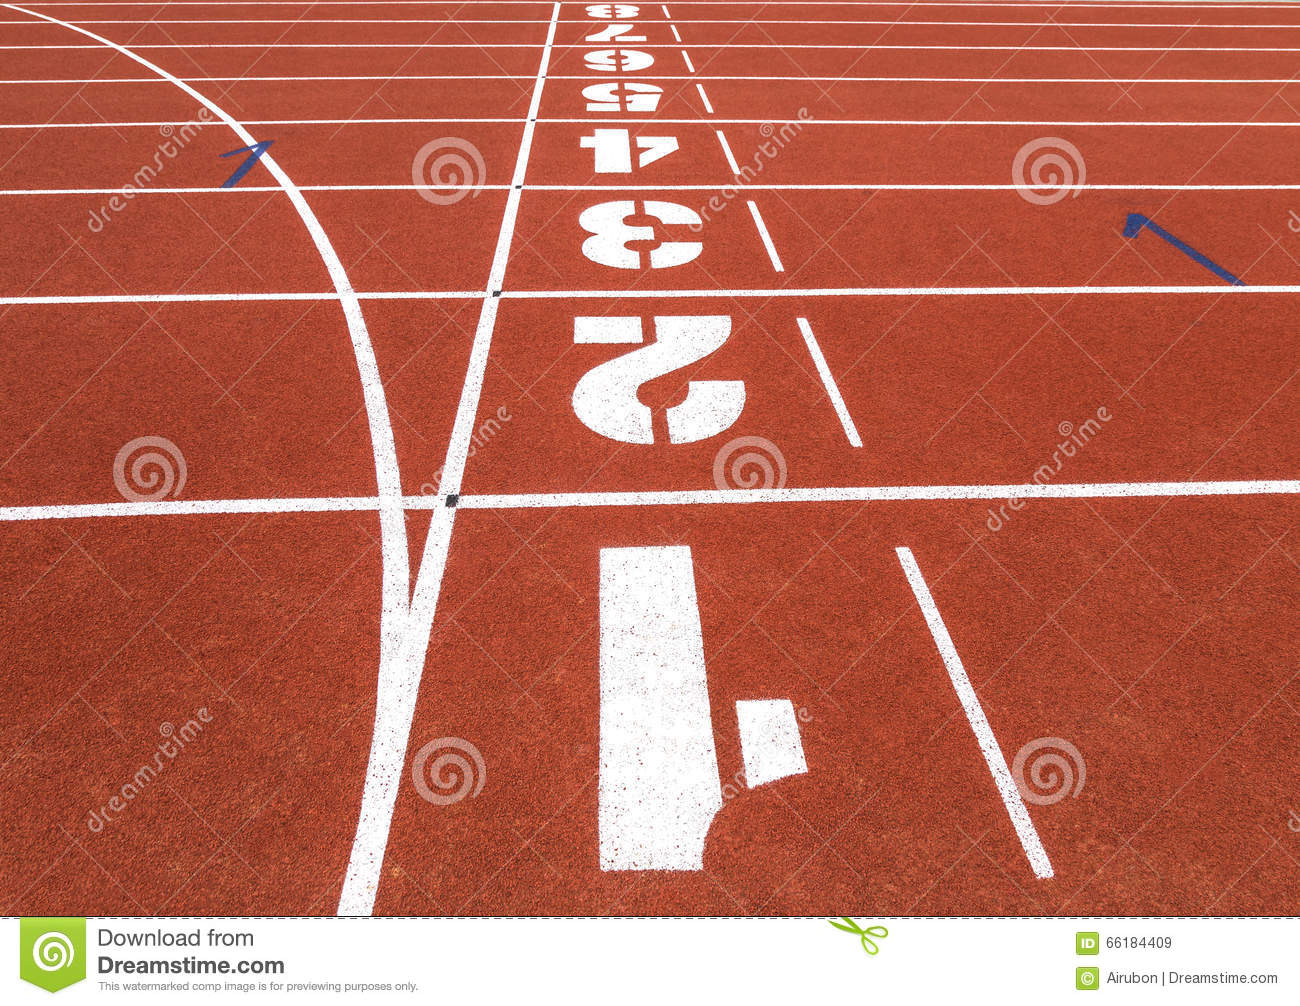 Running track with numbers.